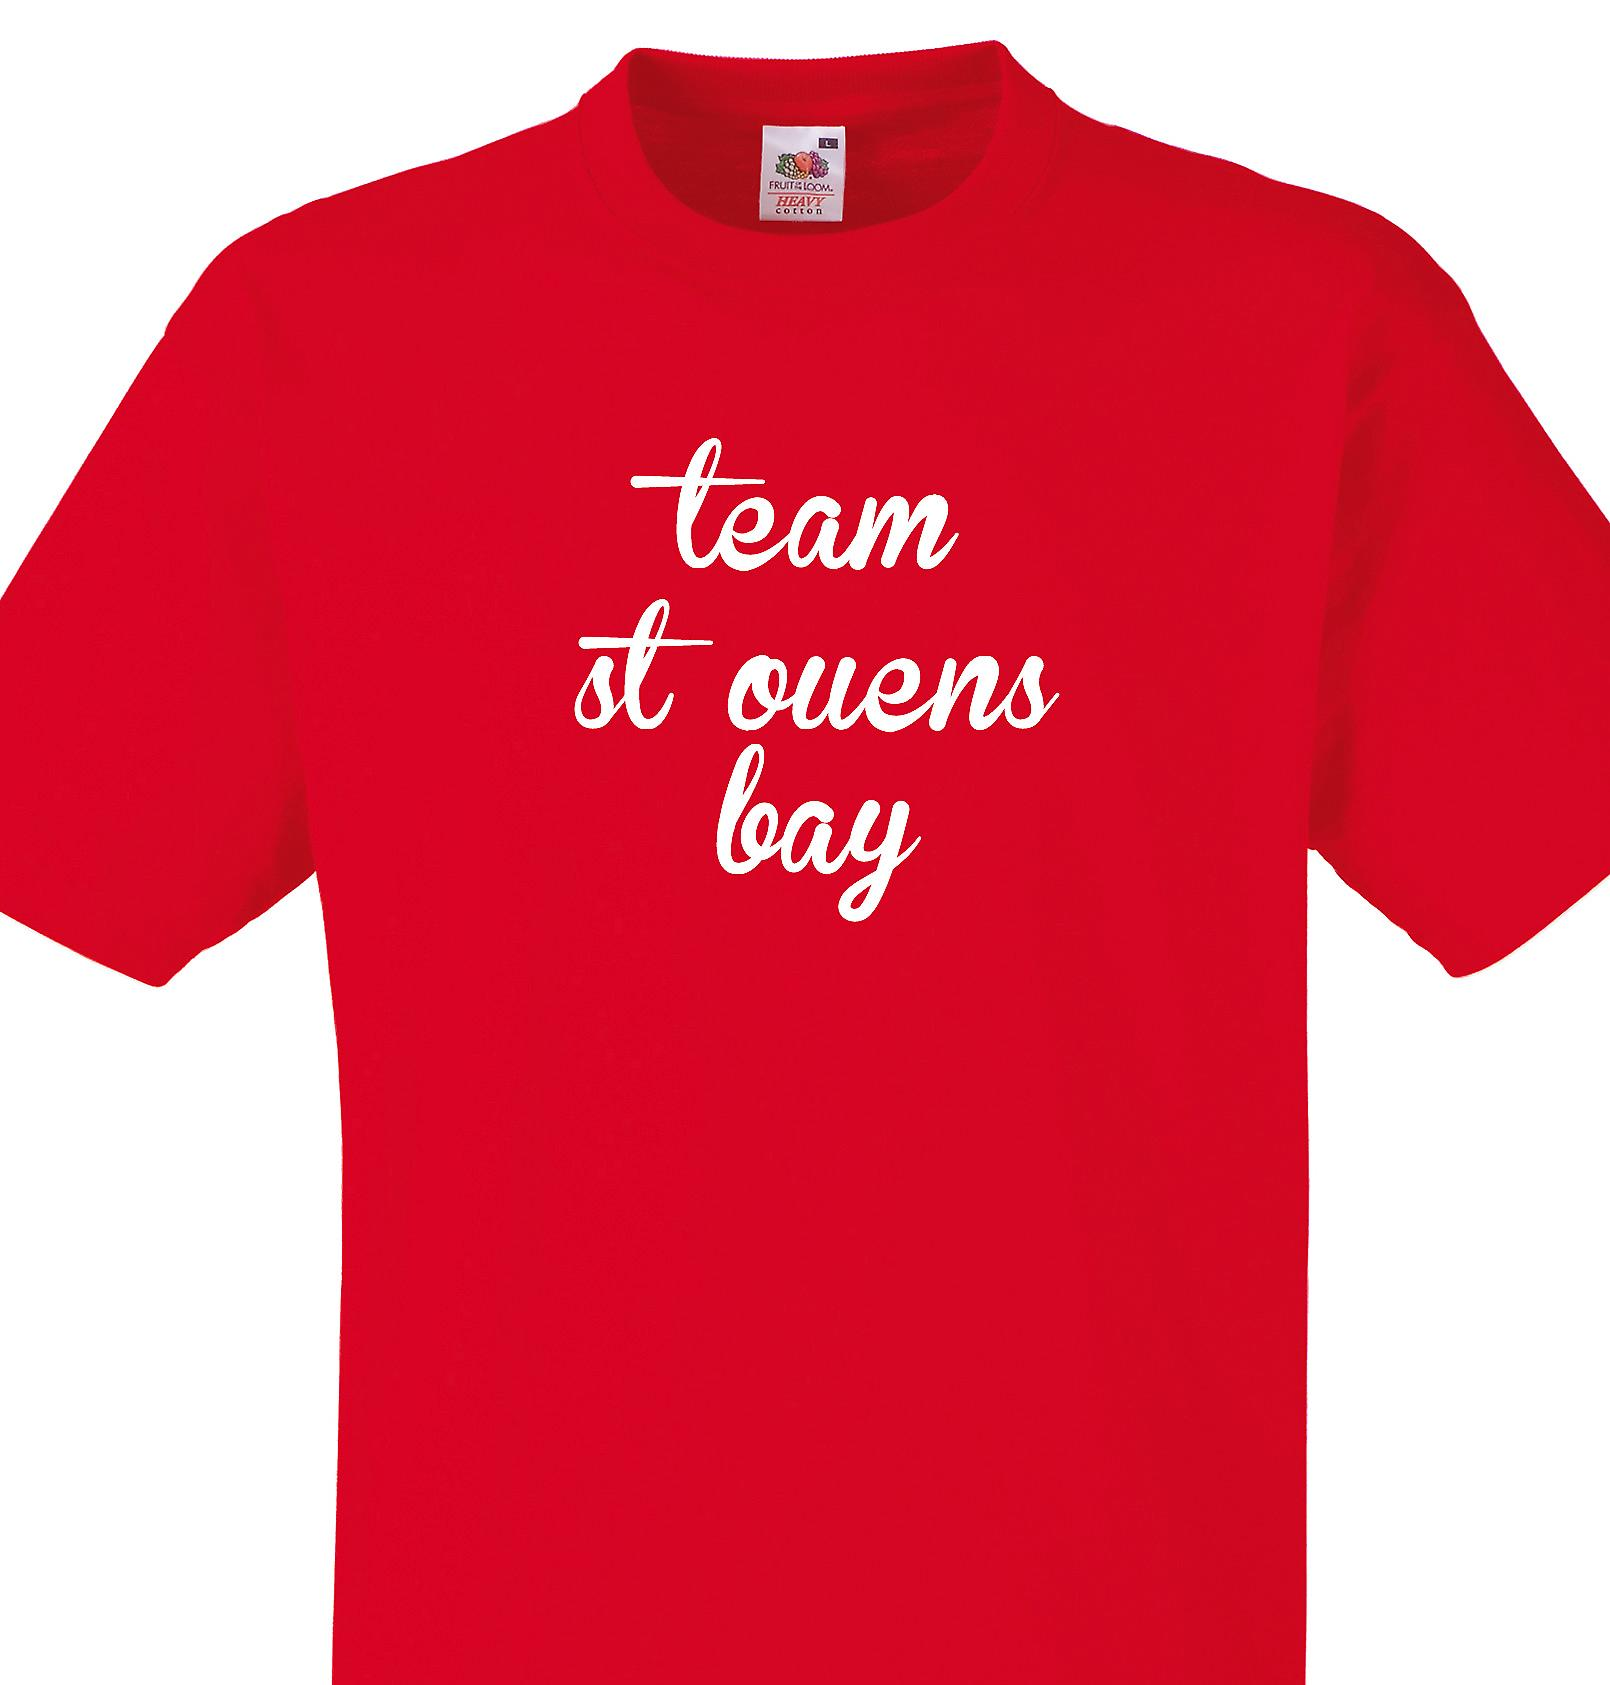 Team St ouens bay Red T shirt